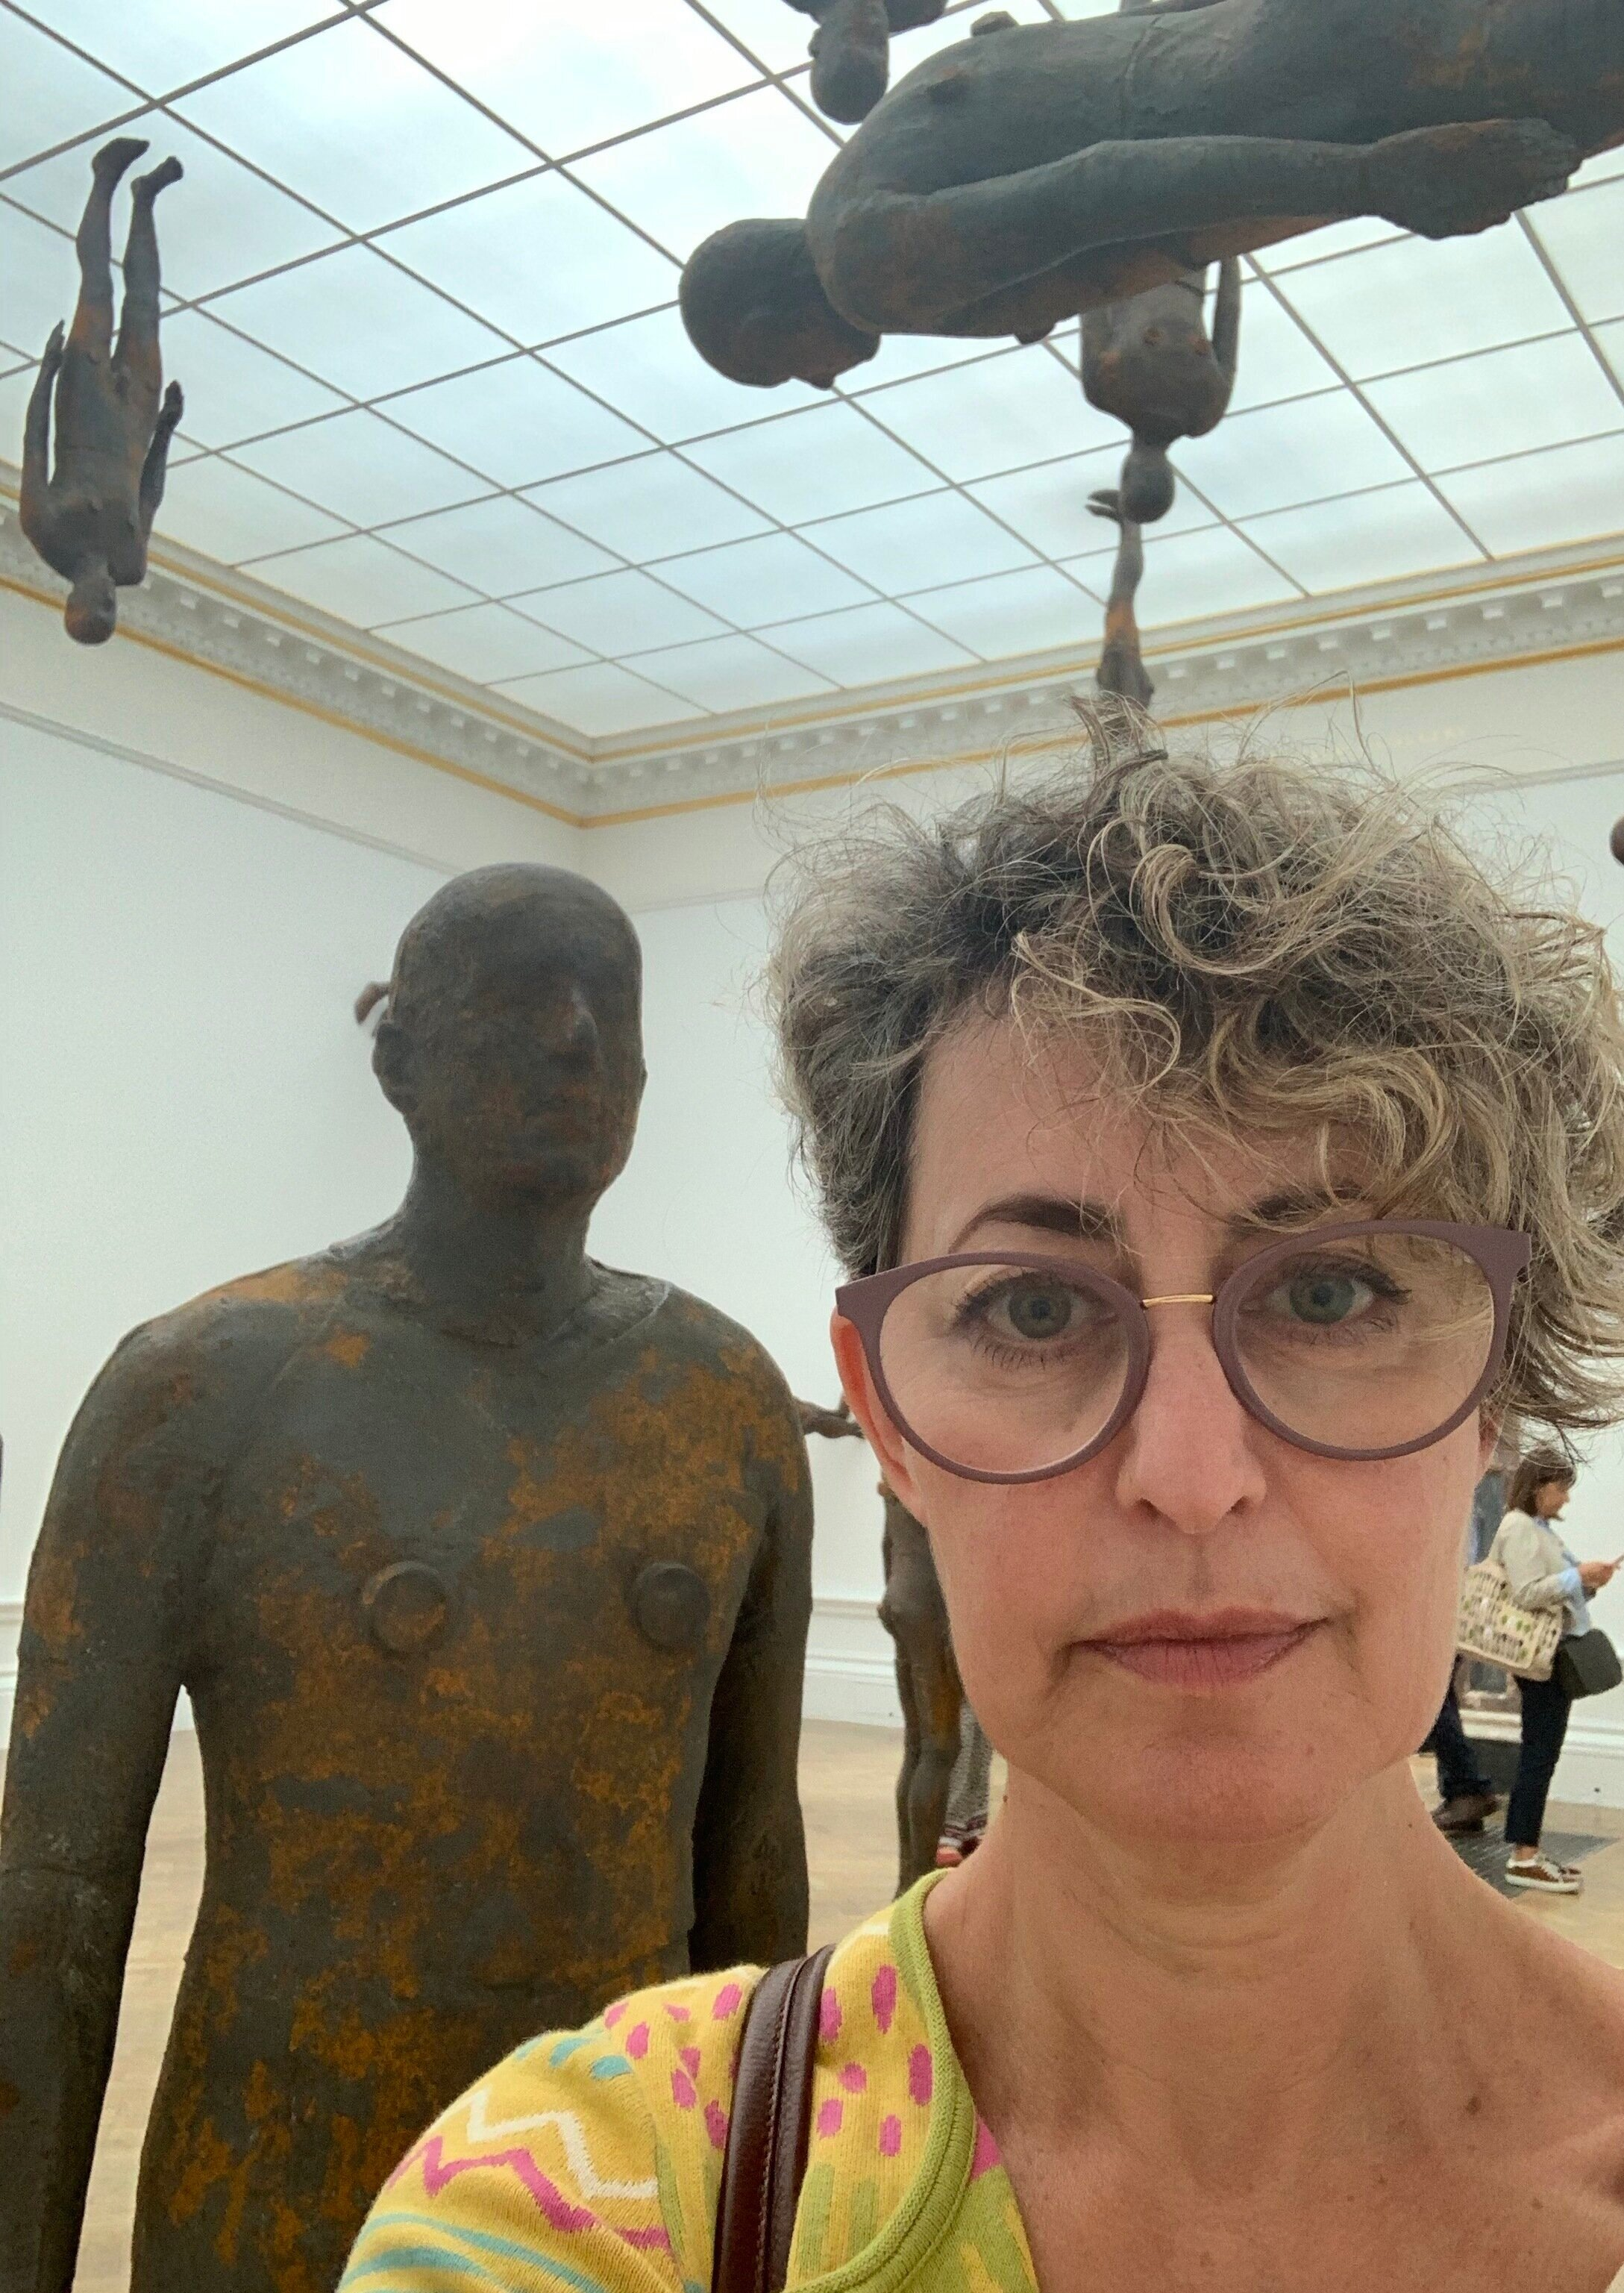 Anthony Gormley's signature body cast sculptures apparently defying gravity in his new Royal Academy show